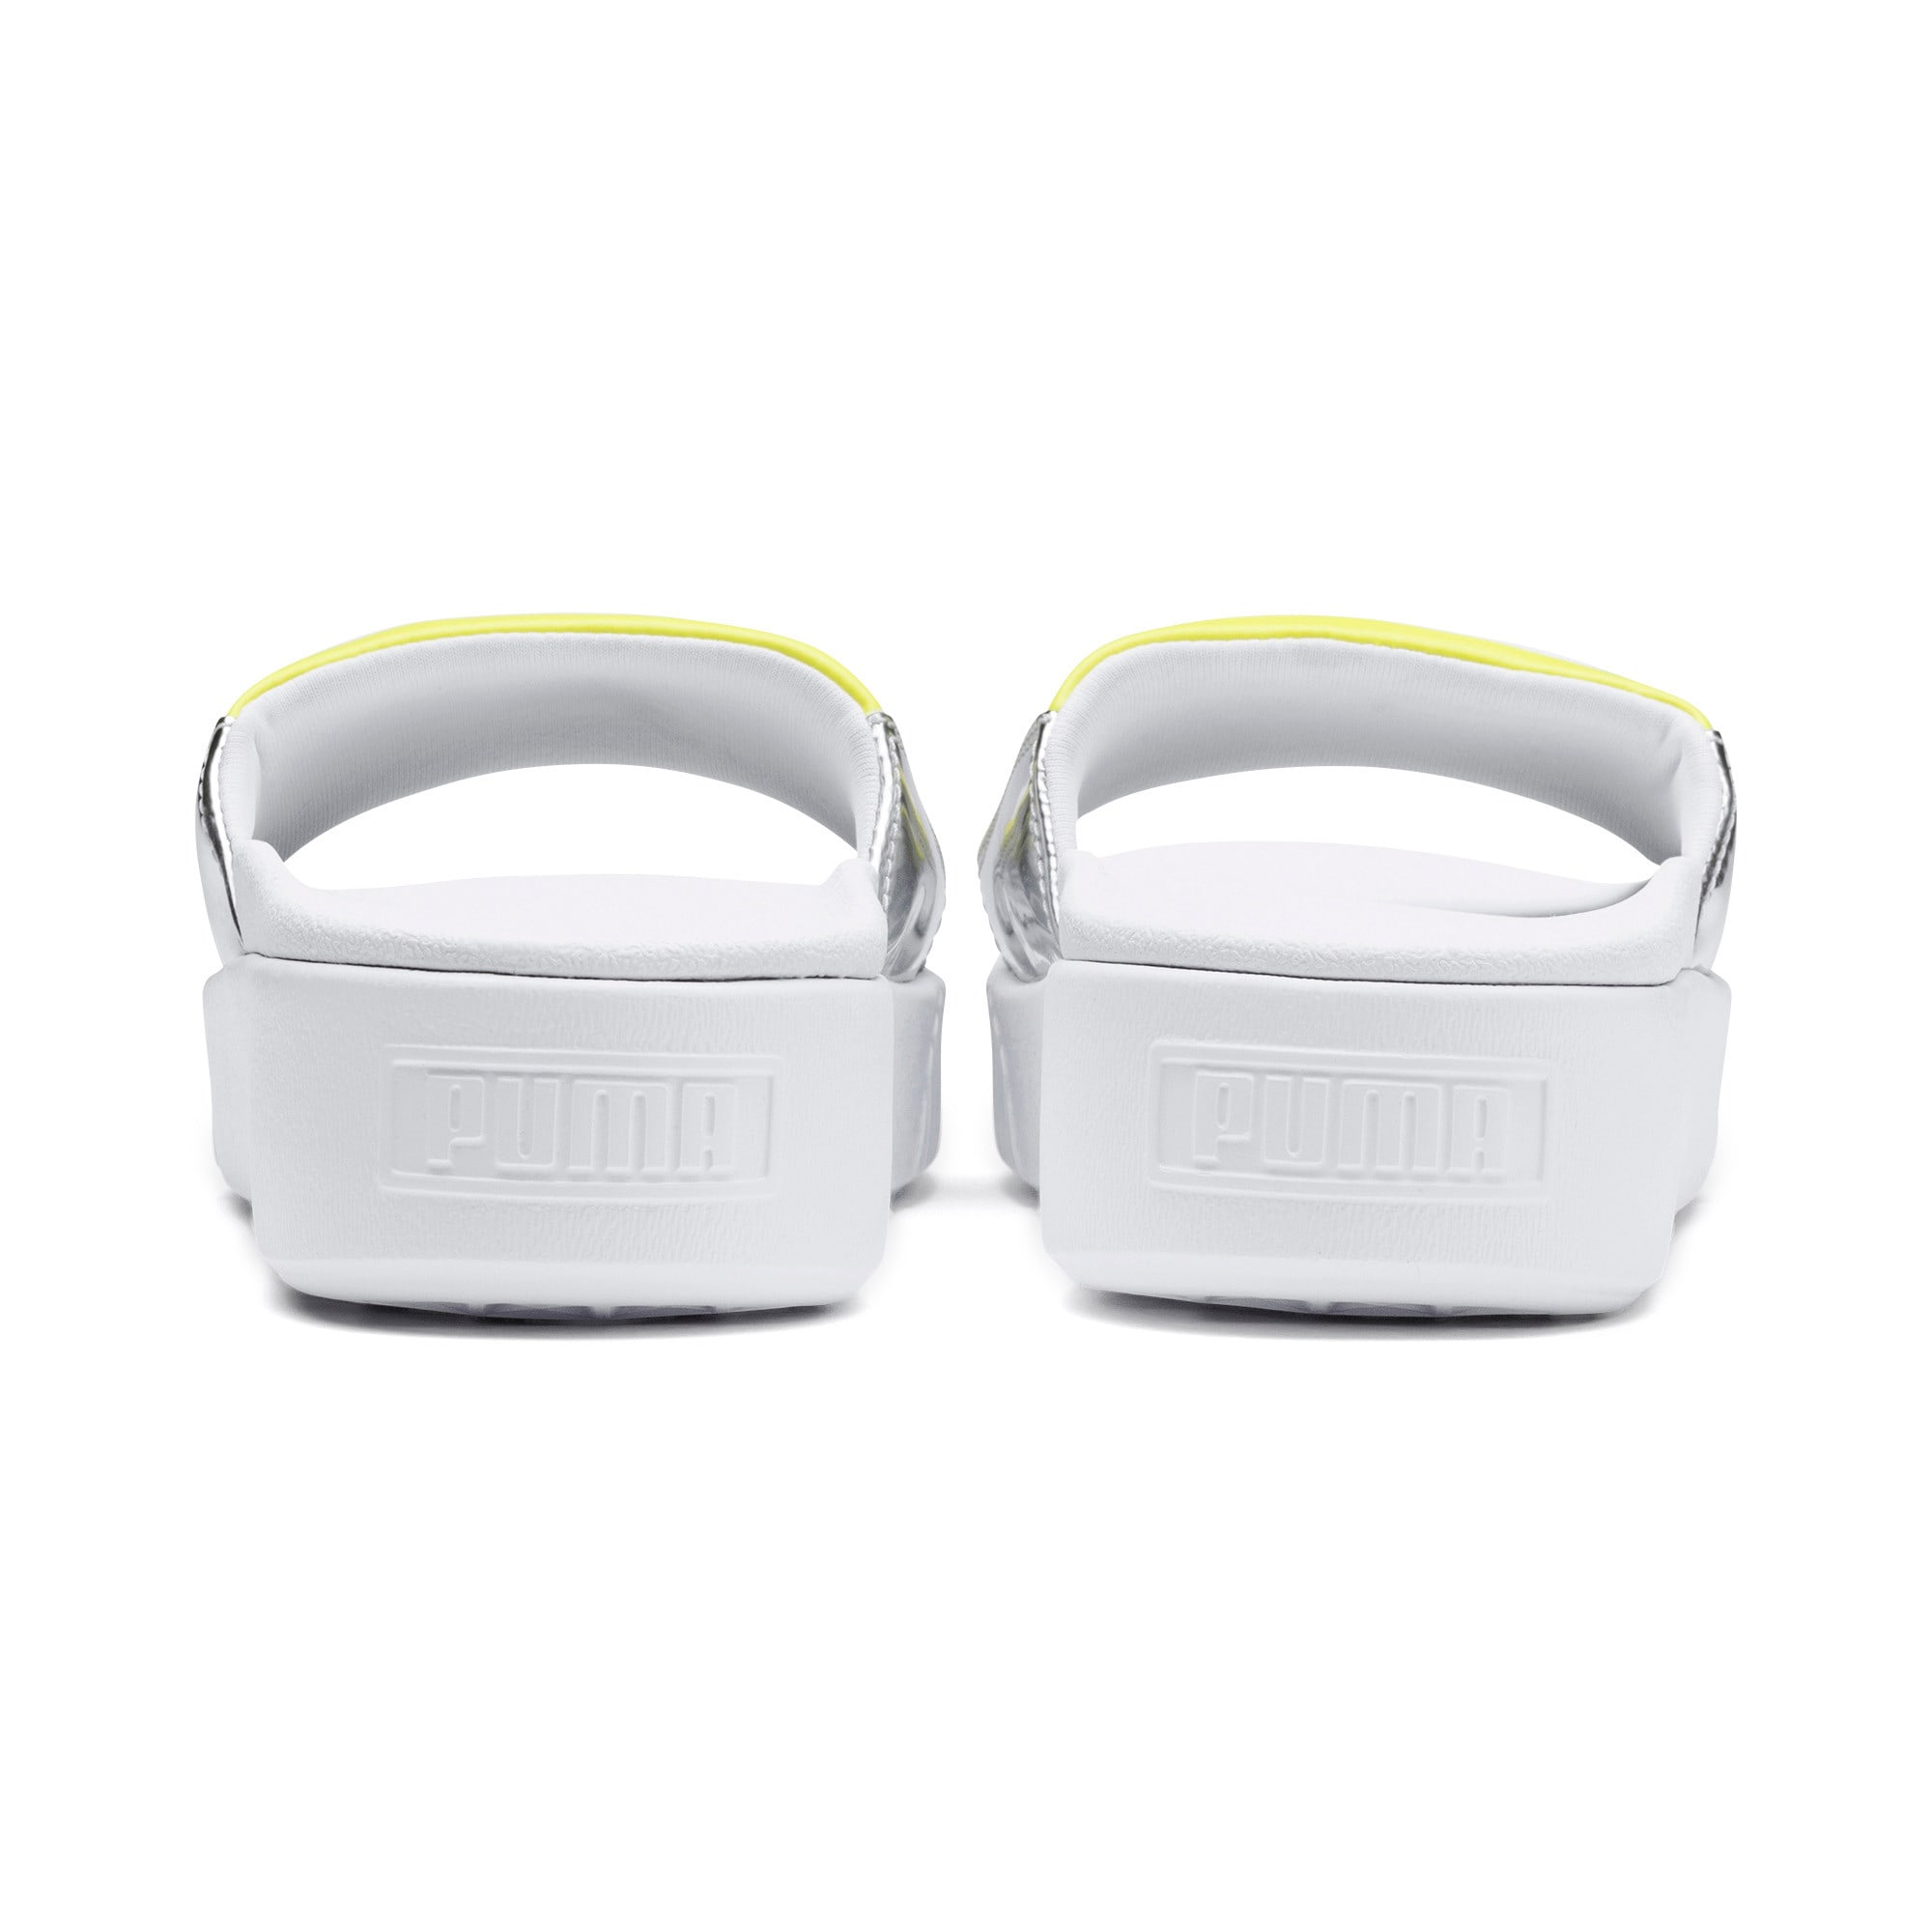 Thumbnail 3 of Platform Slide Trailblazer Metallic Women's Sandals, Puma White-Puma Silver, medium